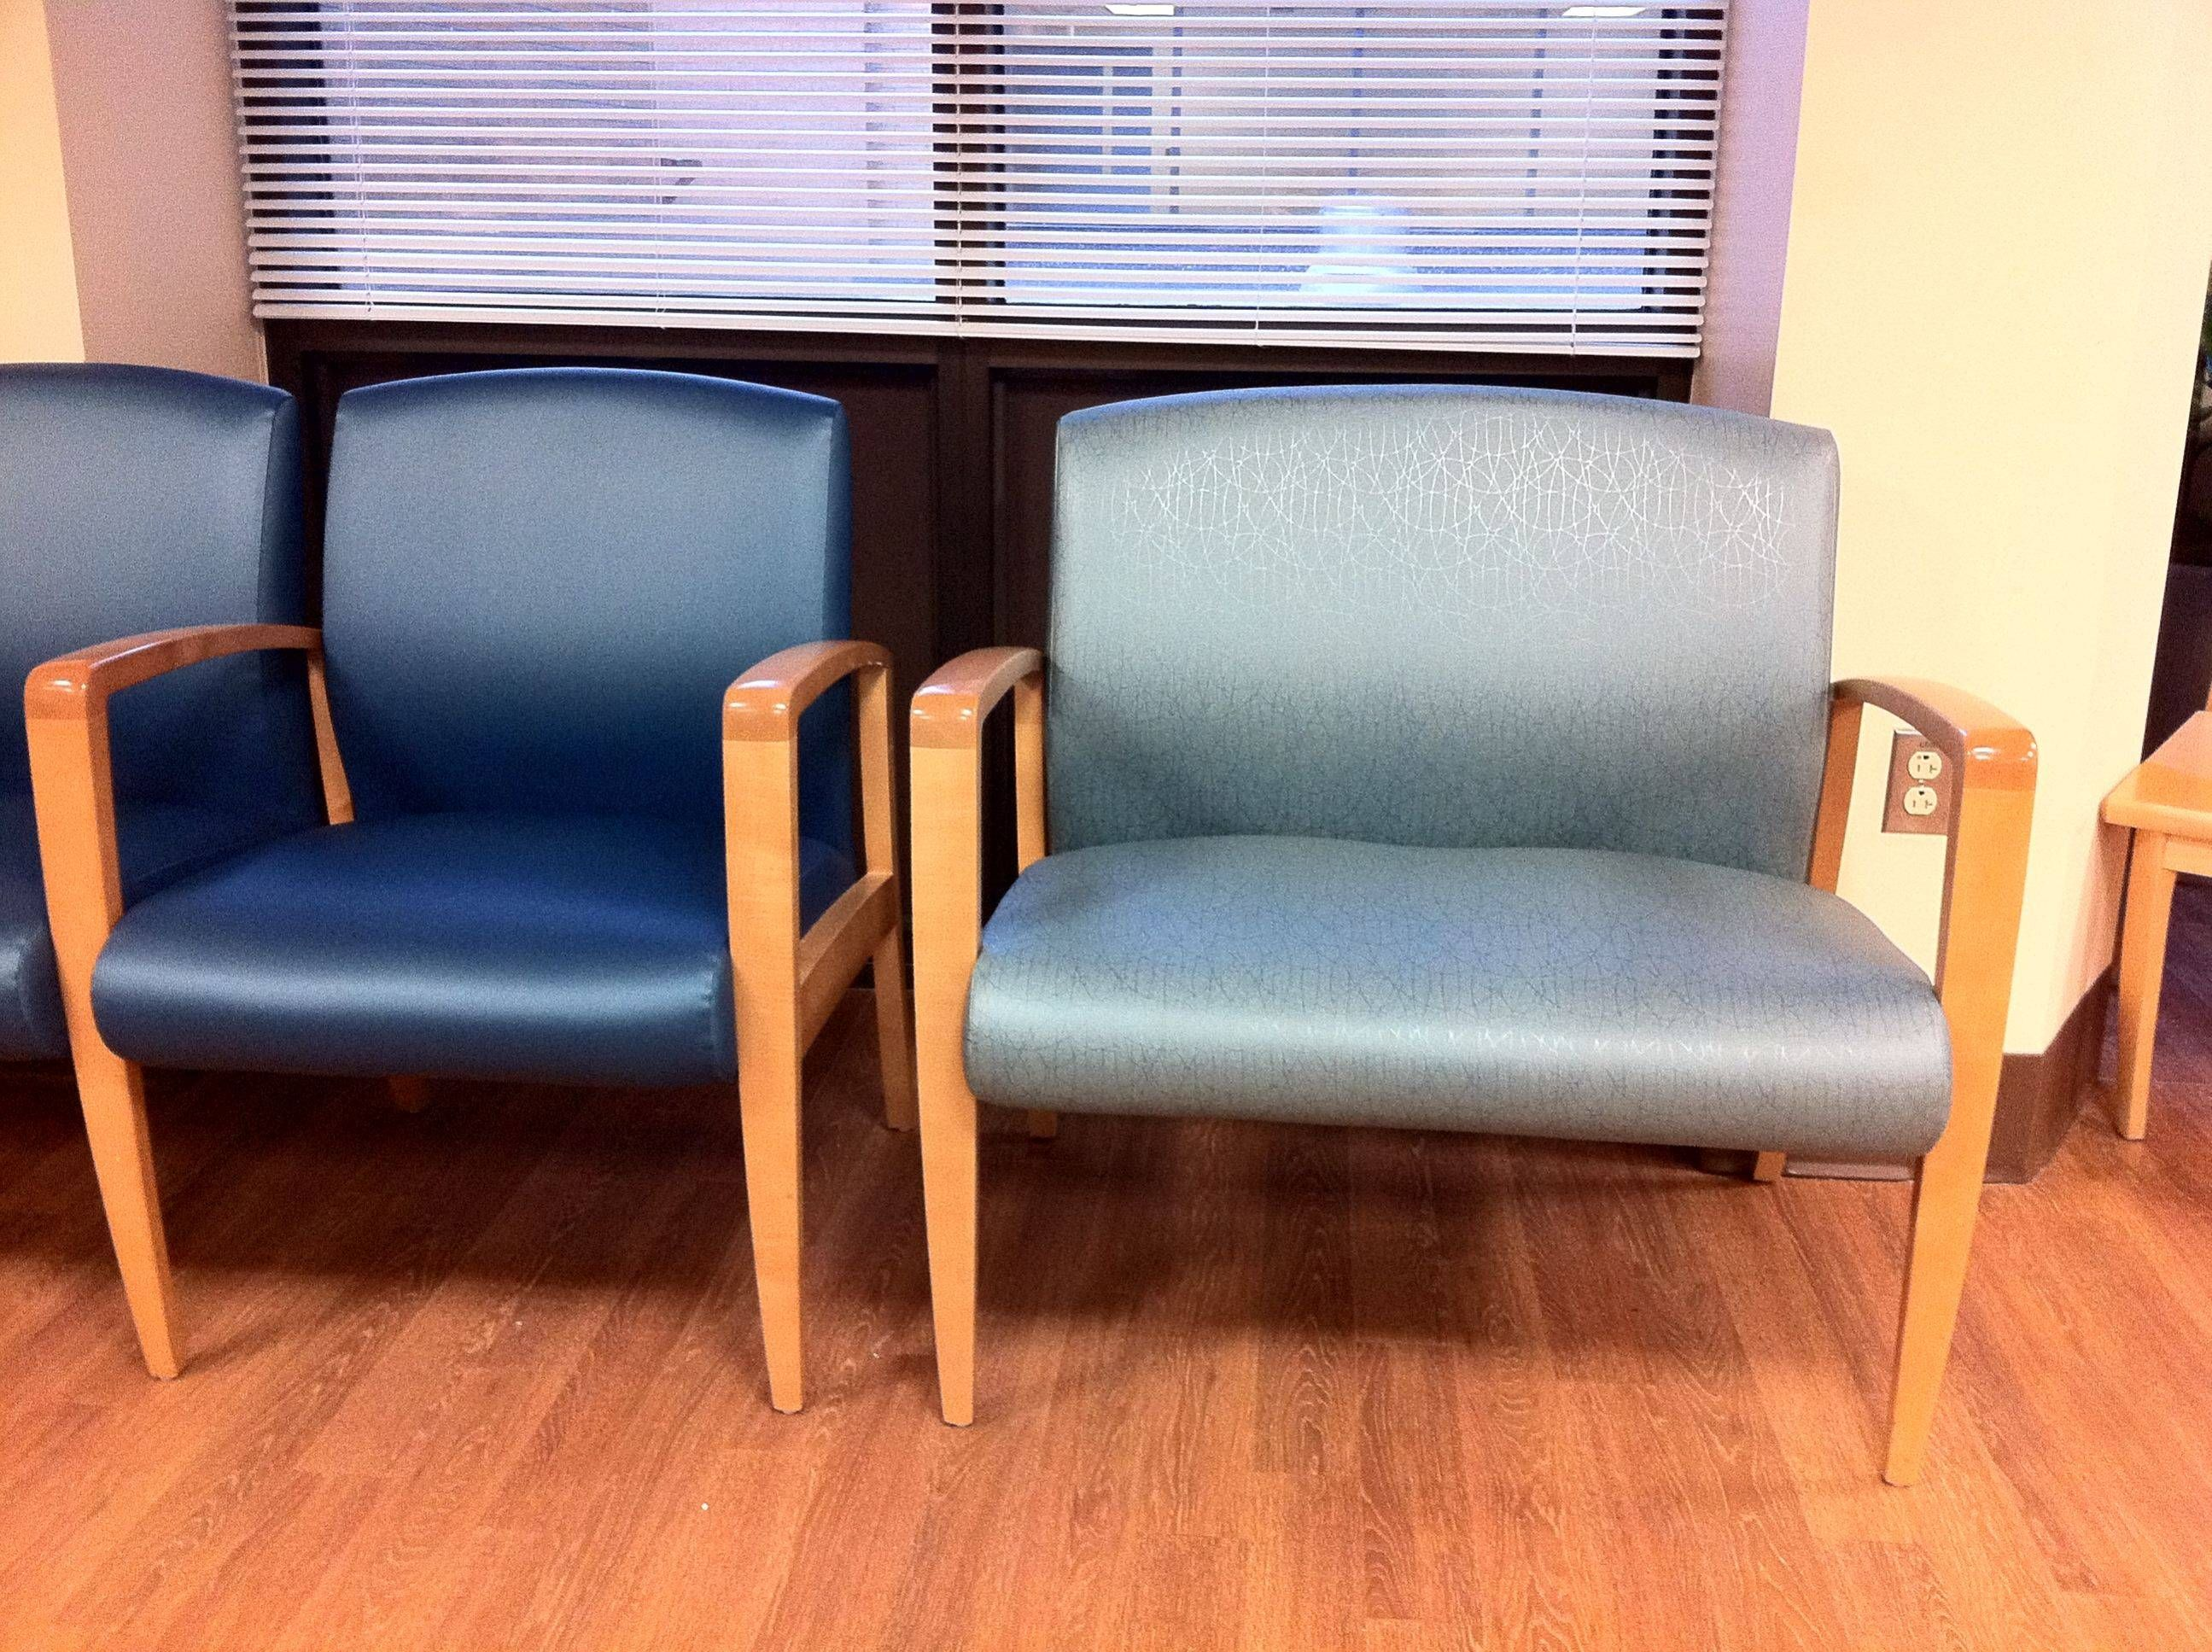 Waiting Room Chairs Cheap Office Waiting Room Chairs Top Listing Sofa Loveseats And